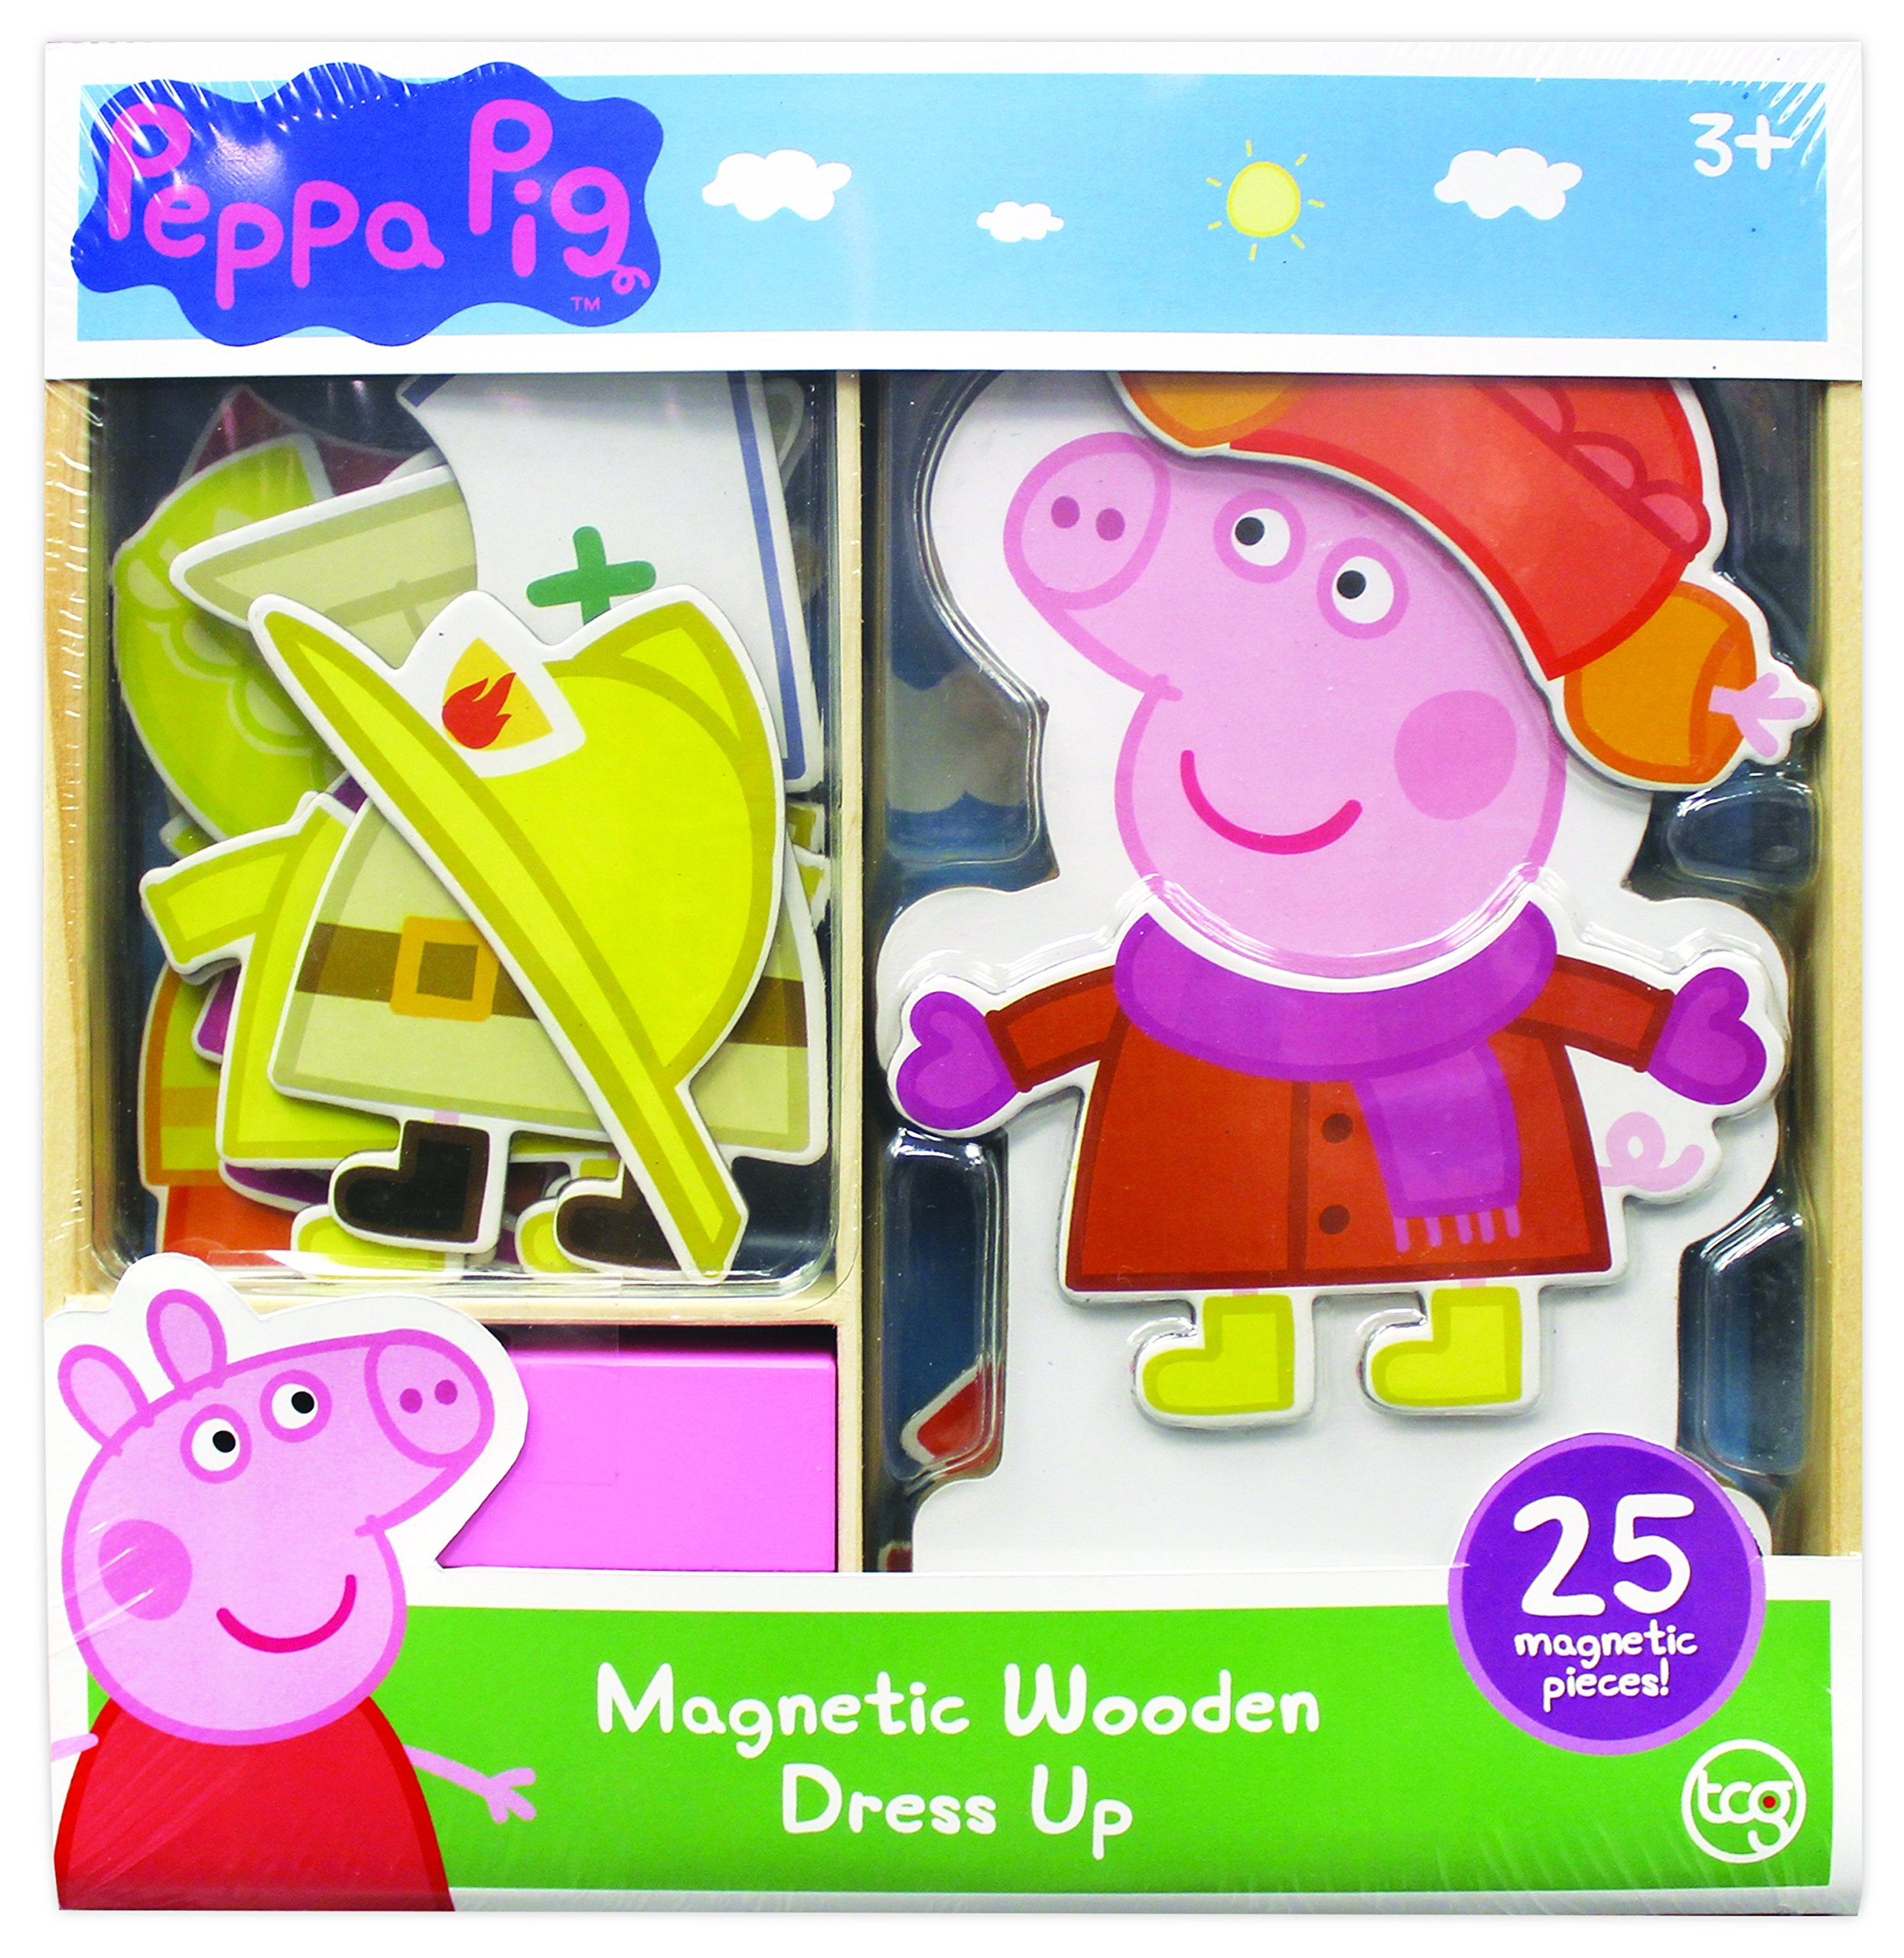 Peppa Pig Magnetic Wood Dress Up Puzzle (25 Piece) by Peppa Pig (Image #3)